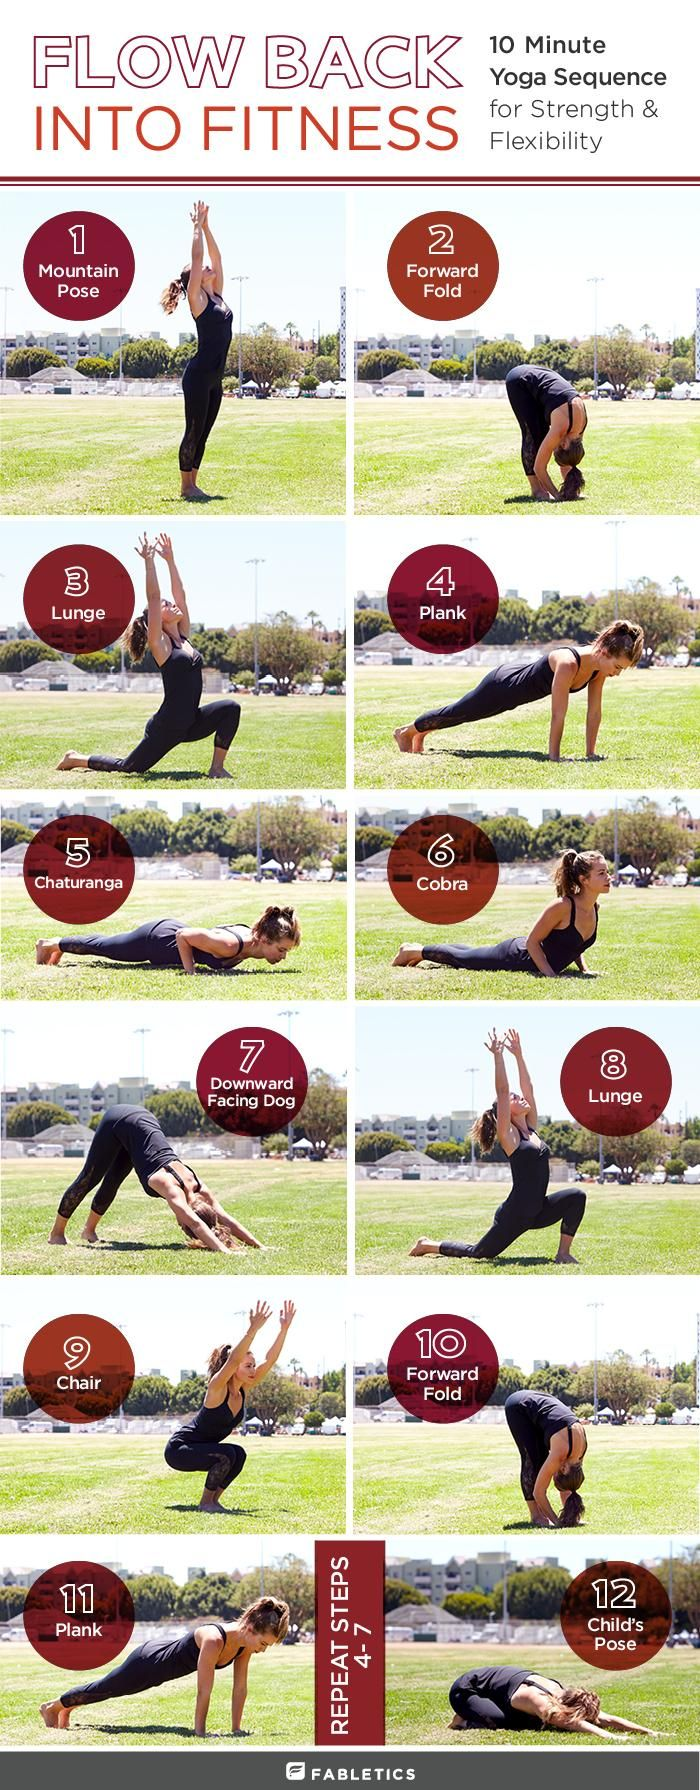 Go With The Flow: 10-Minute Yoga Sequence to Get You Back on the Mat - The Fabletics Blog